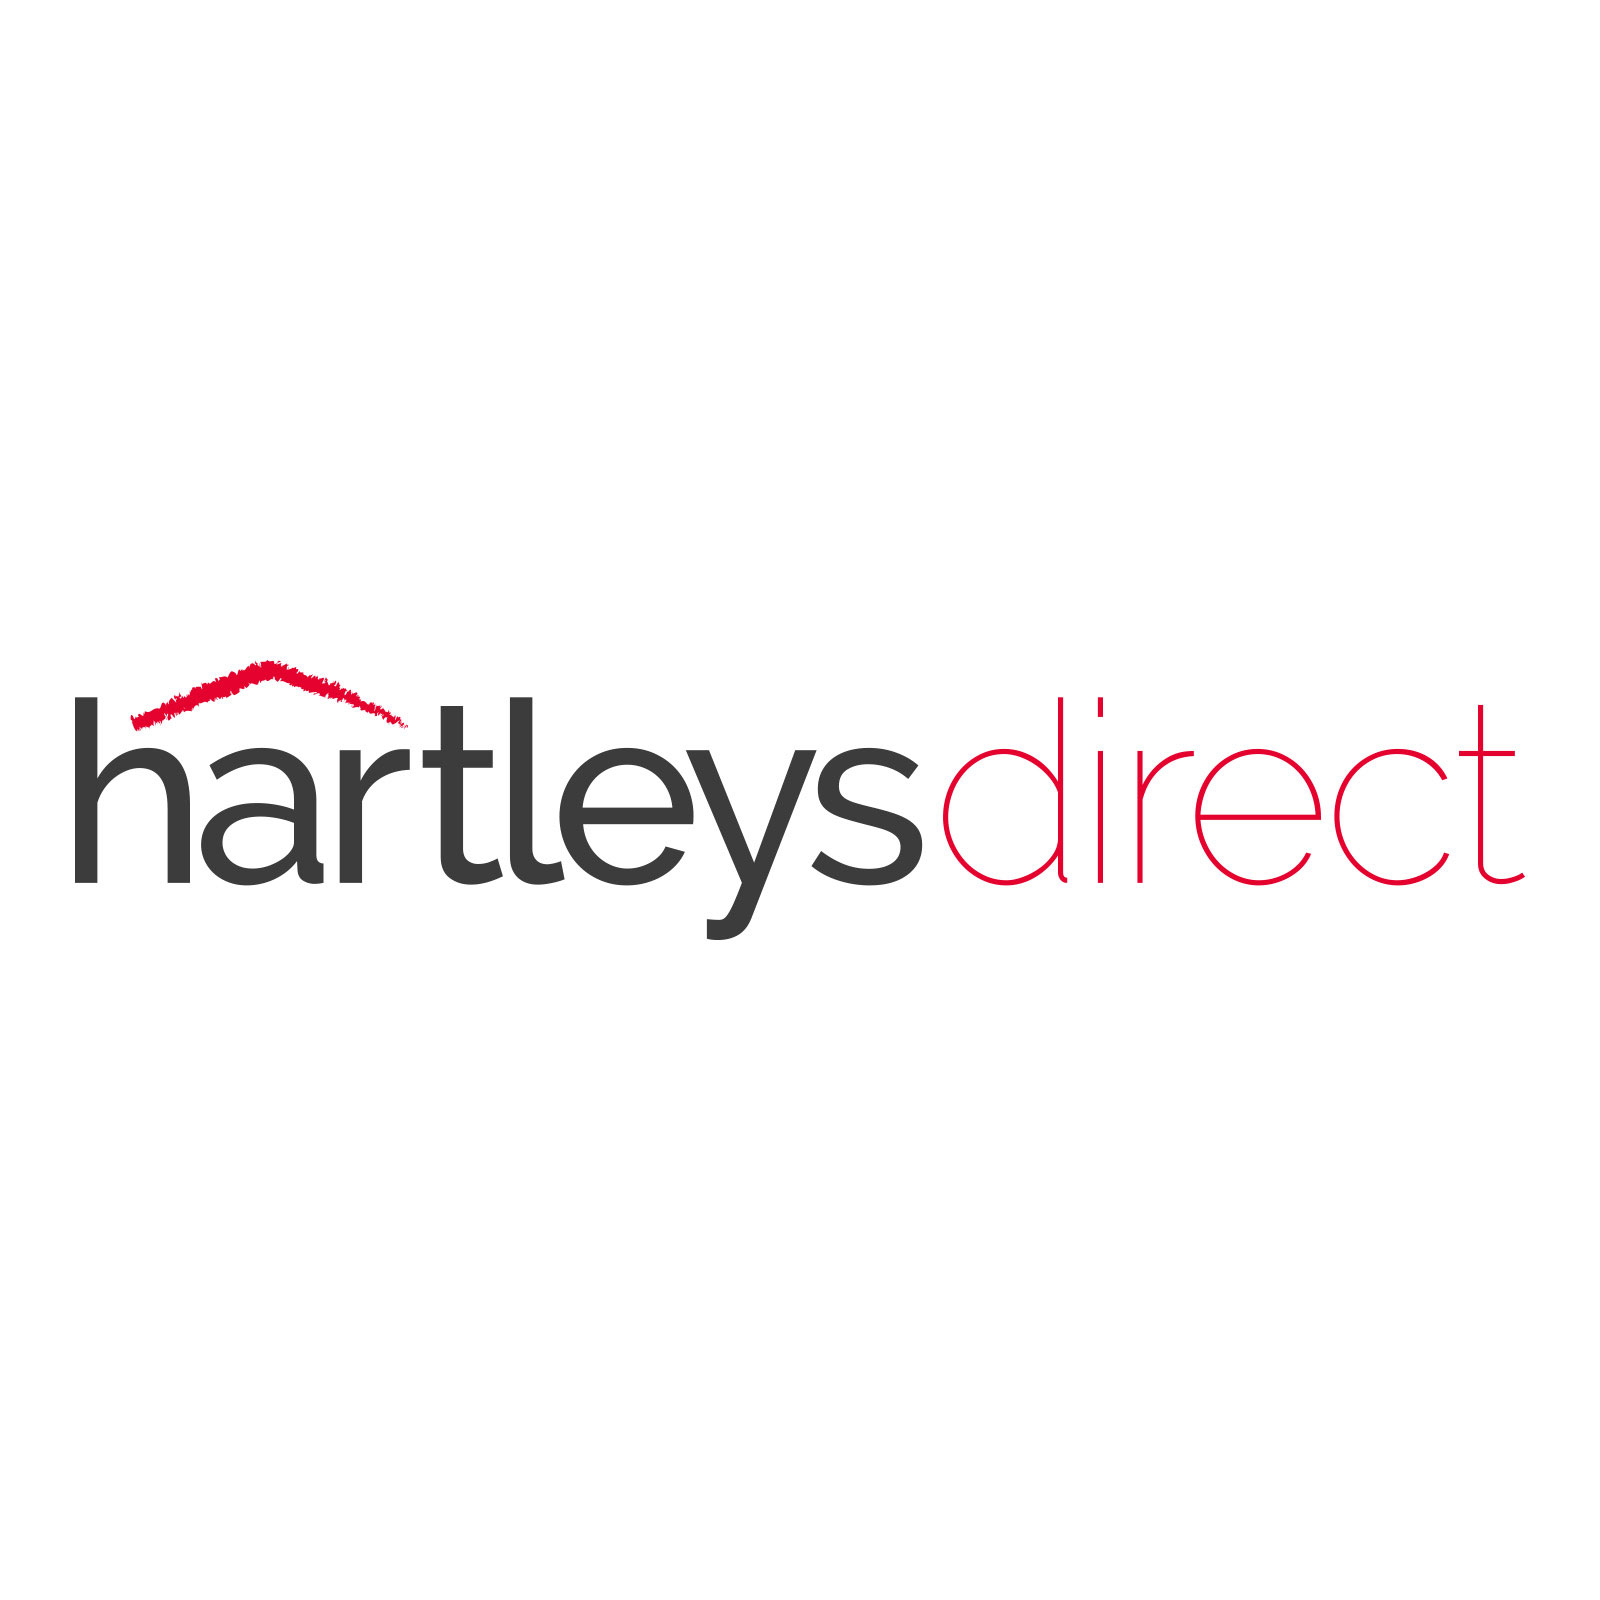 Hartleys-Corner-Ladder-Shelf-Unit-with-Accessories-on-White-Background.jpg